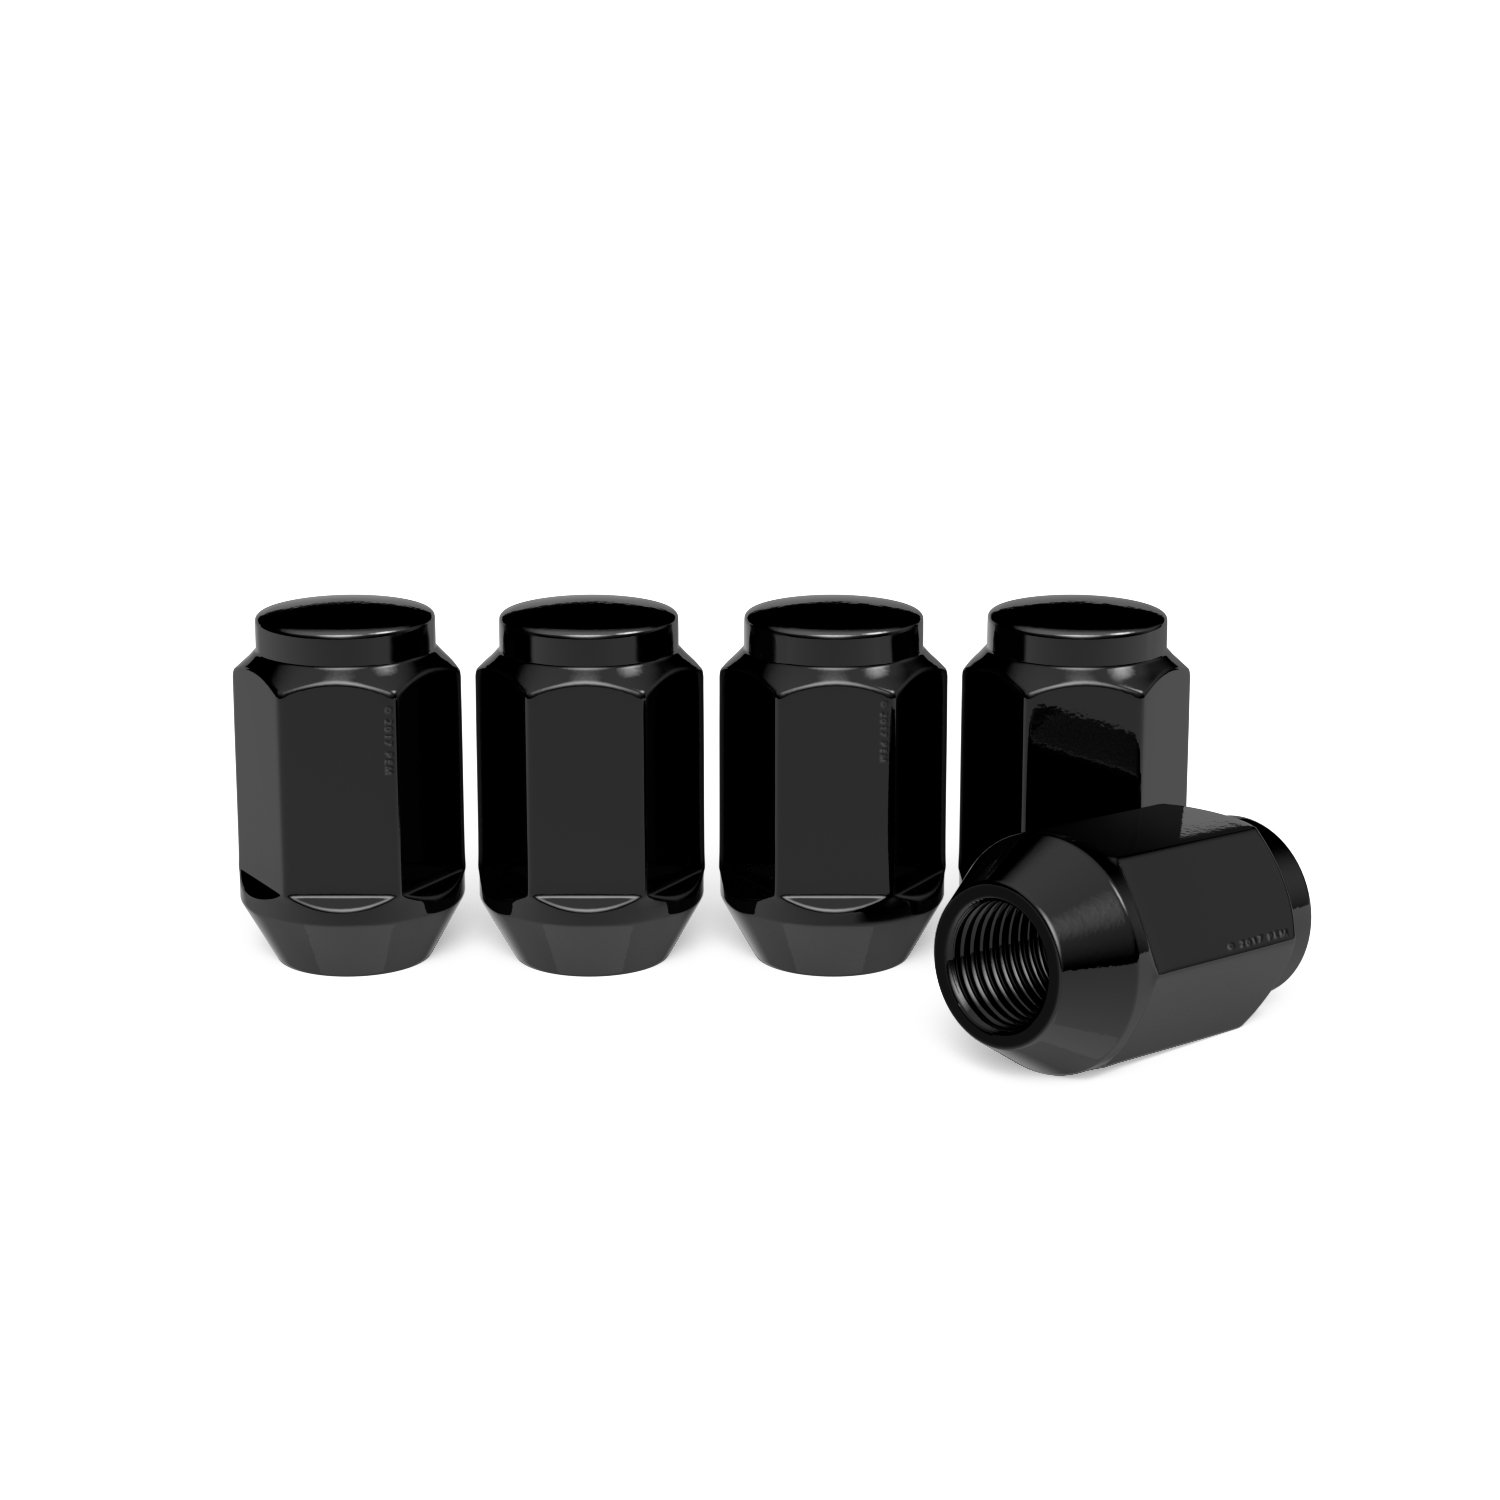 for Ford Mustang Explorer Dodge Ram 1500 Ford F100 F150 Econoline Precision European Motorwerks Bulge Acorn Closed End Cone Conical Taper Seat 20pcs Black 1//2-20 Lug Nuts Stance Magic Uses 19mm or 3//4 Hex 1.4 Length